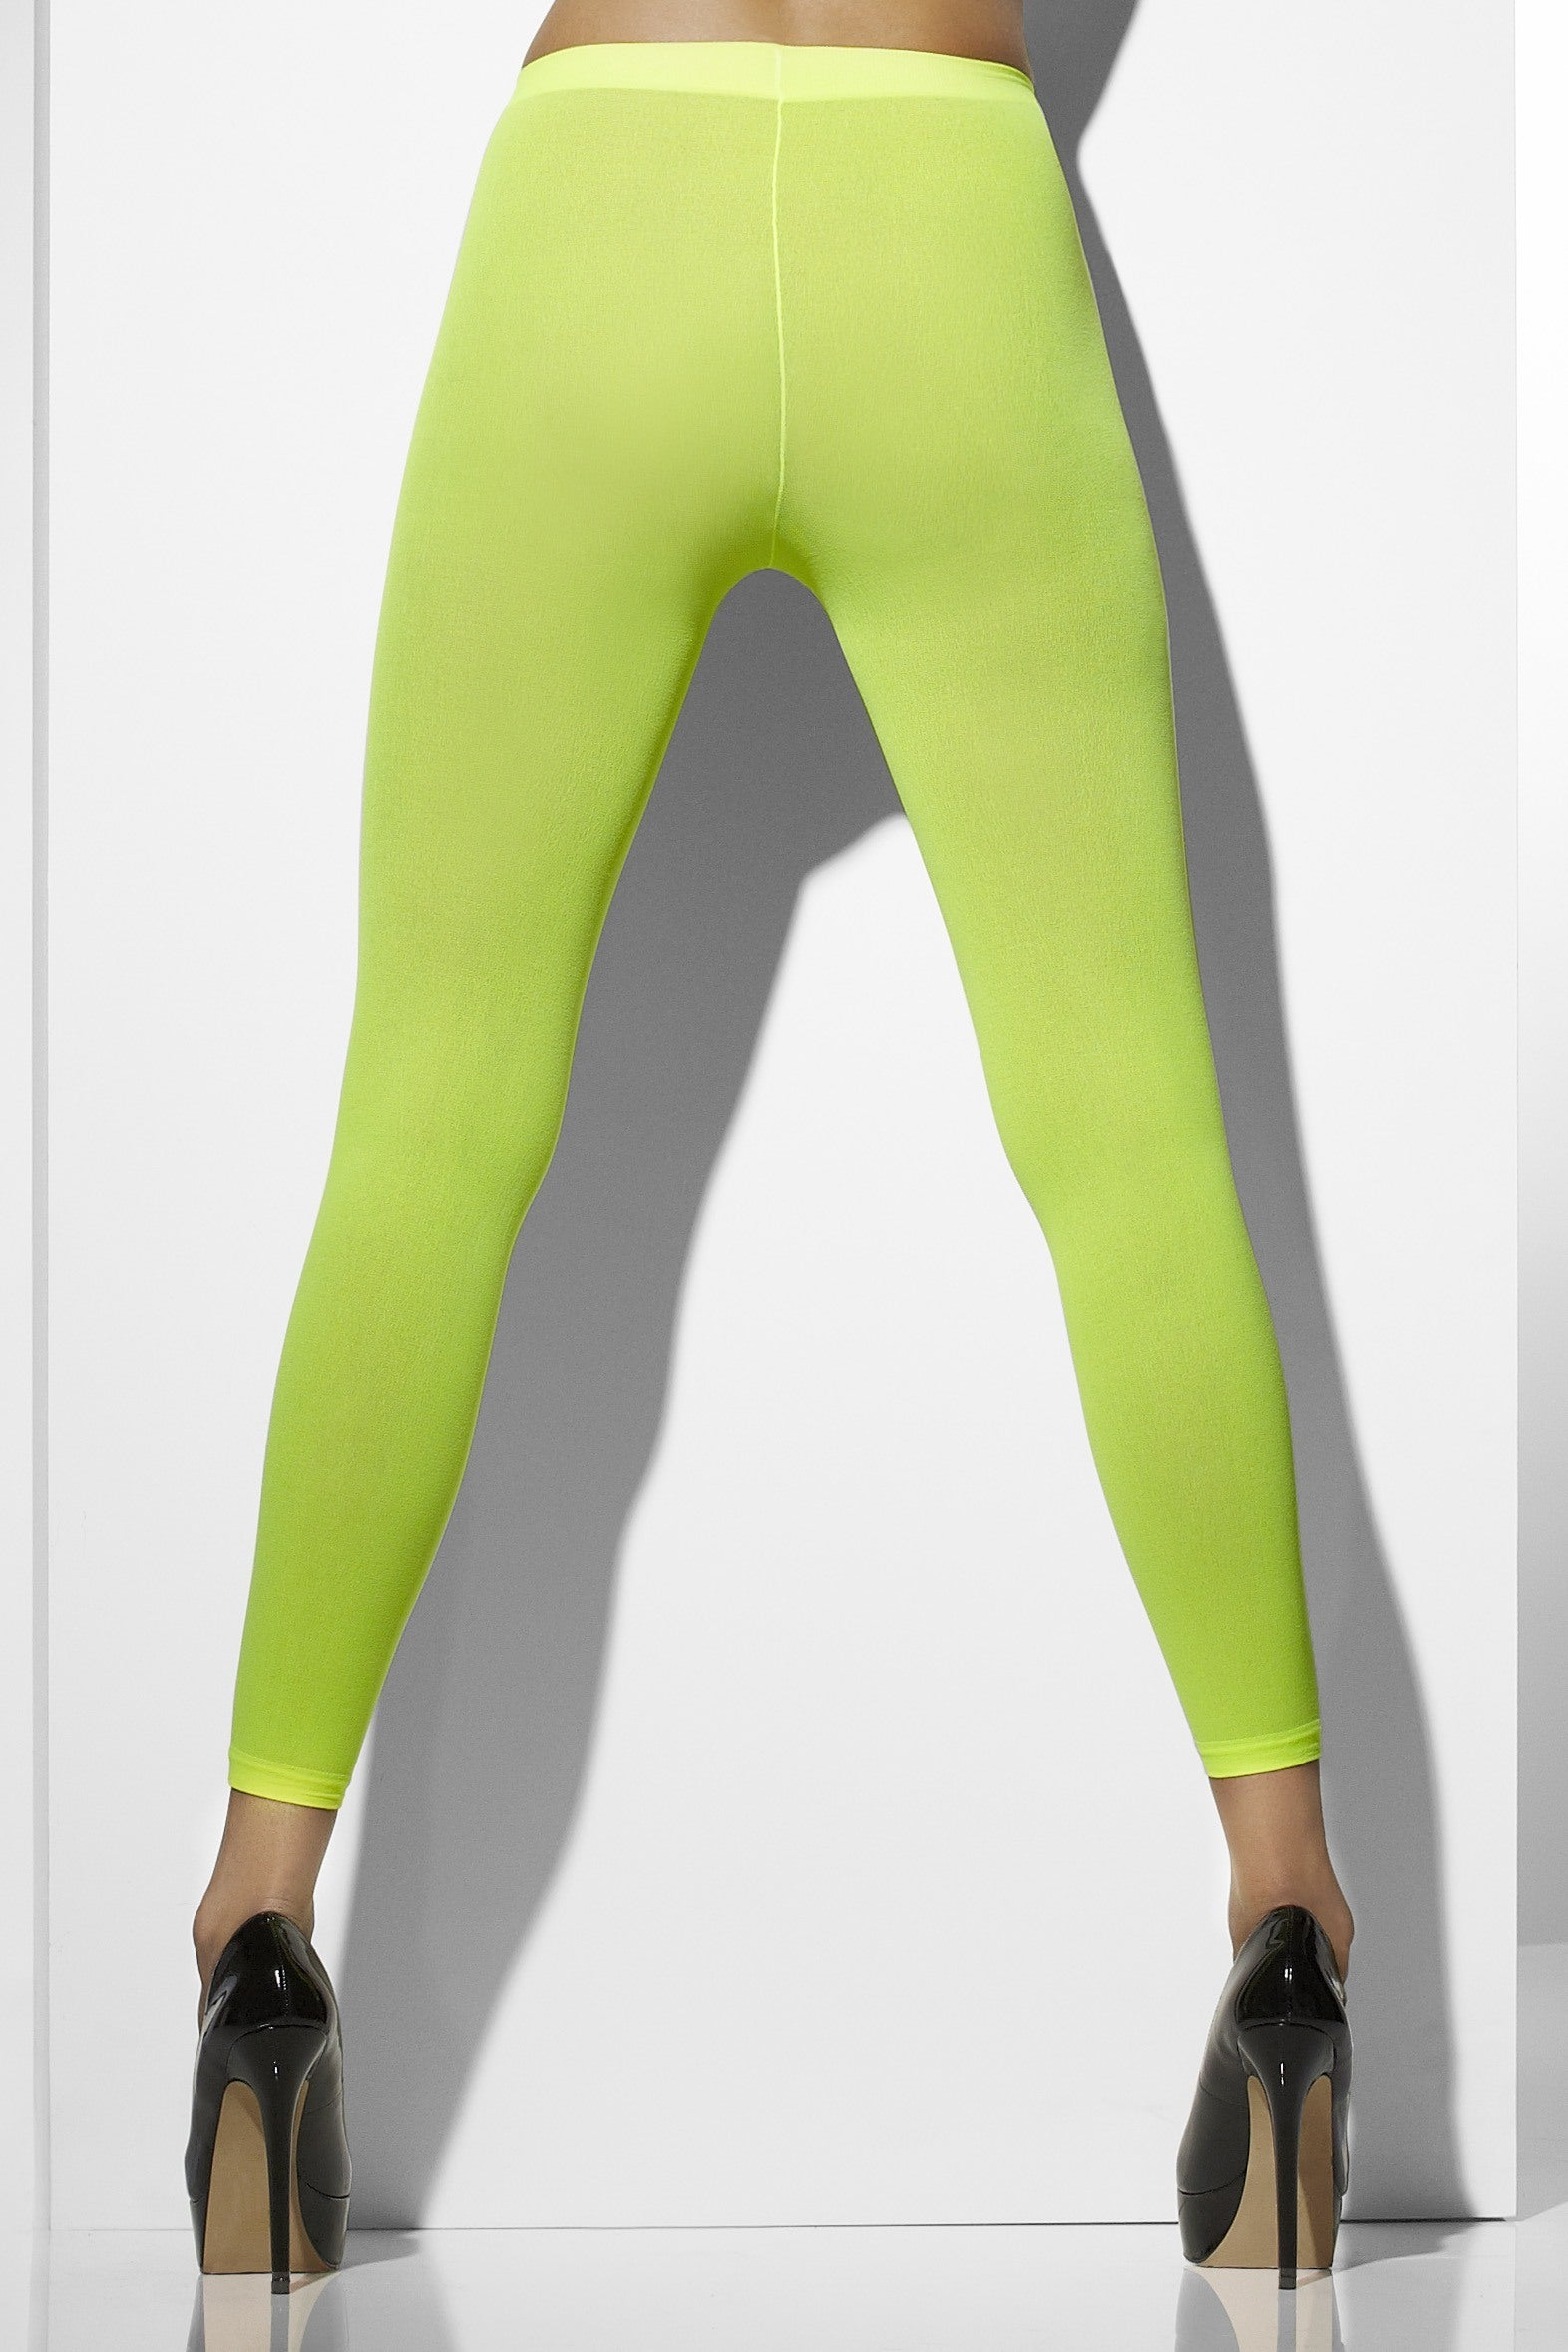 NEON GREEN OPAQUE FOOTLESS TIGHTS from Flingers Party World Bristol Harbourside who offer a huge range of fancy dress costumes and partyware items